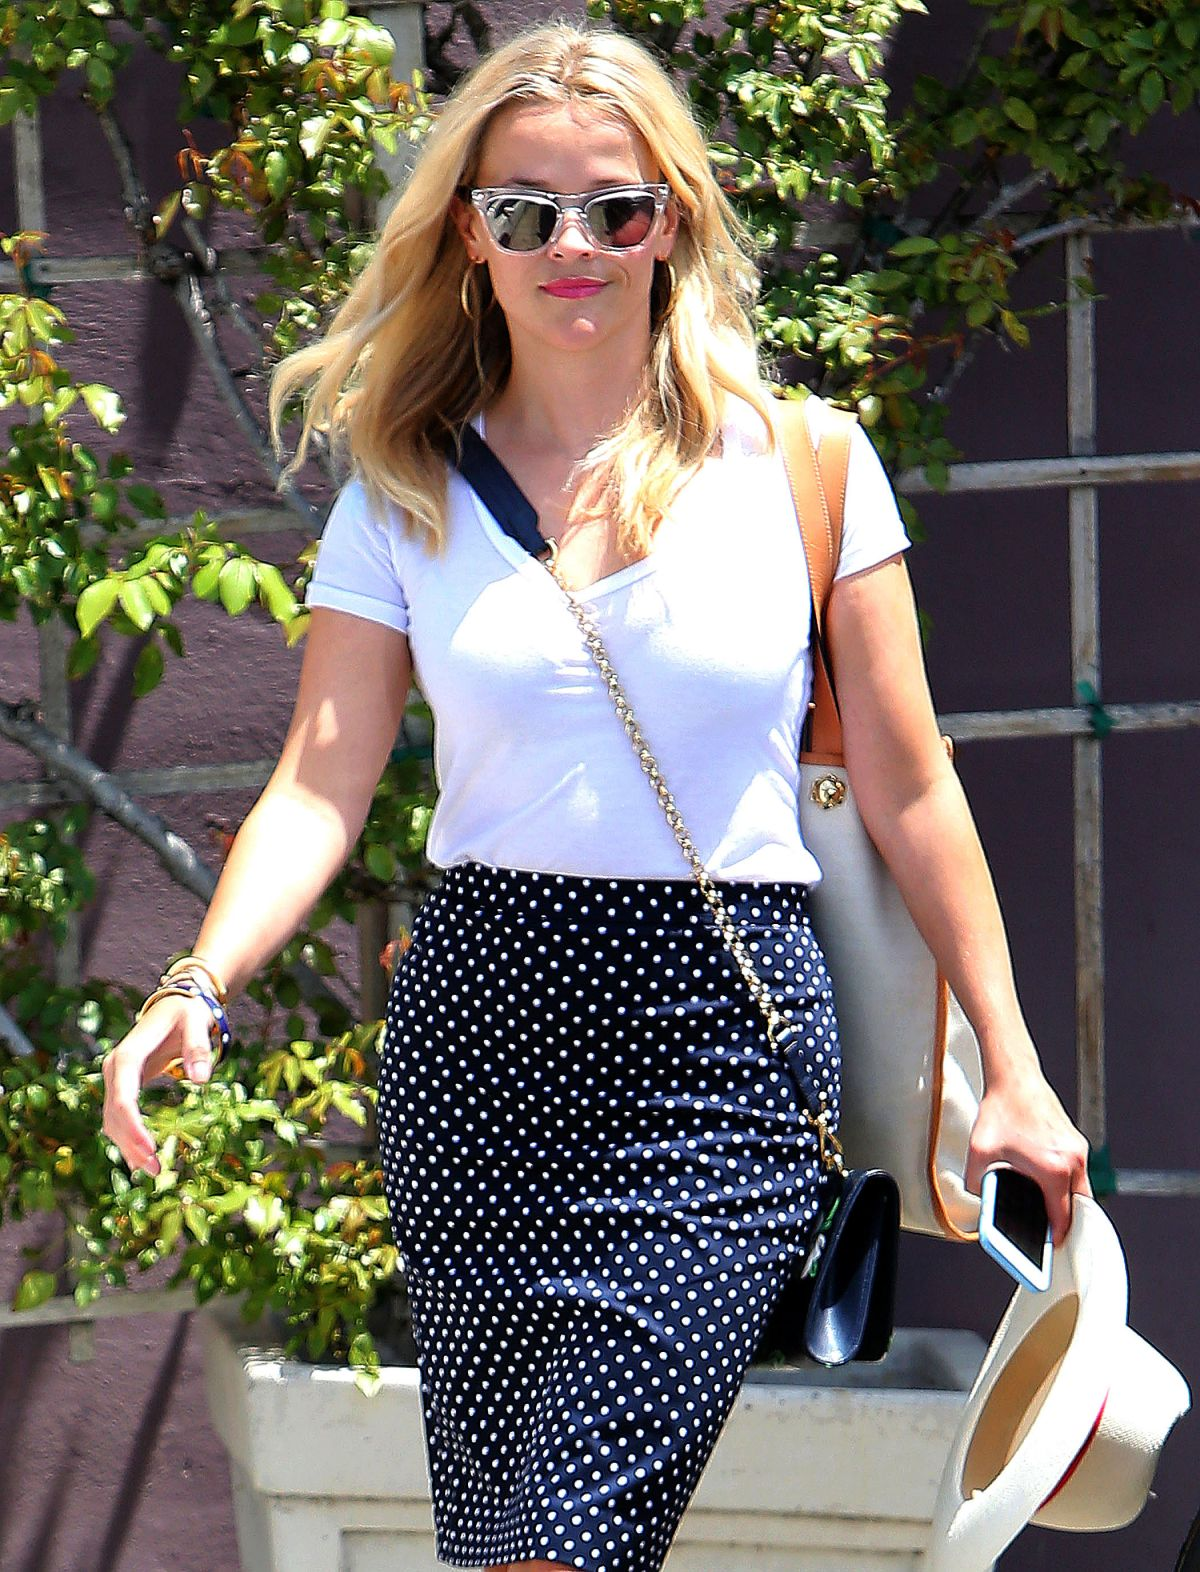 REESE WITHERSPOON Arrives at a Meeting in Los Angeles 07/31/2015